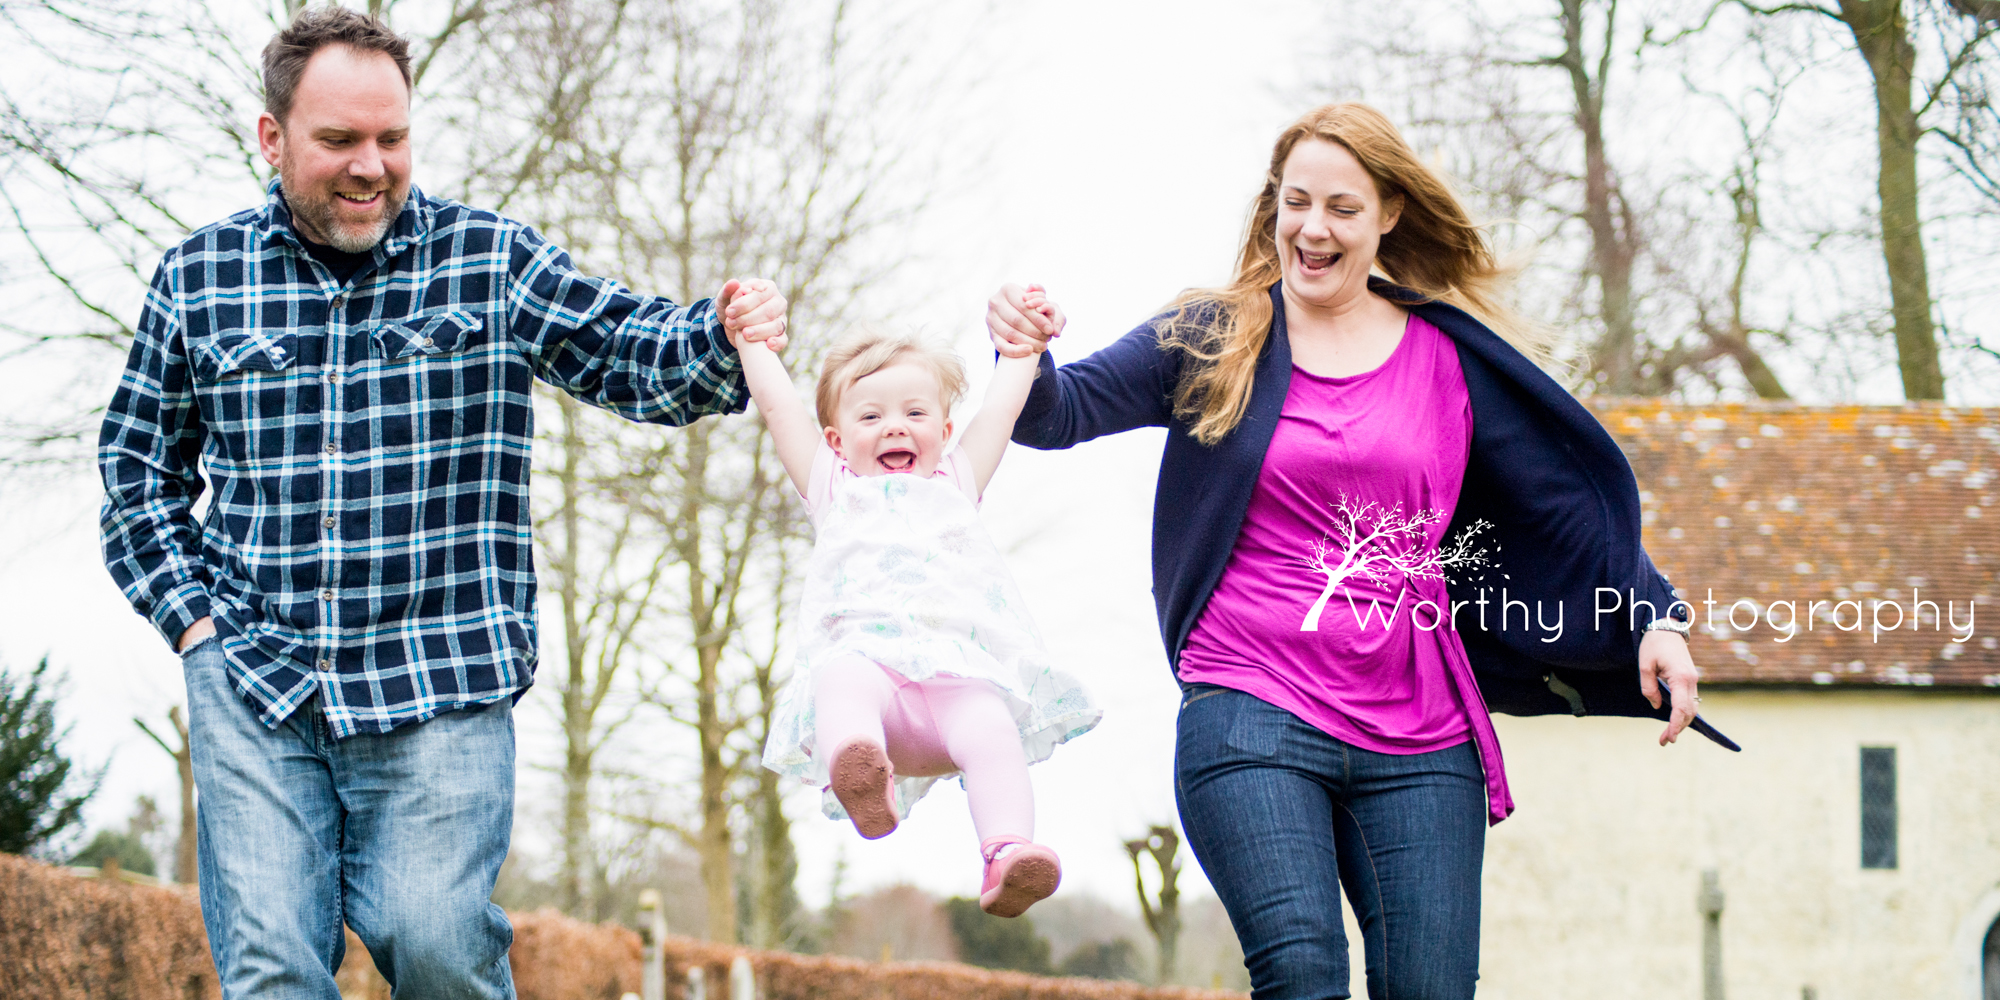 Worthy Photography Family Portraits